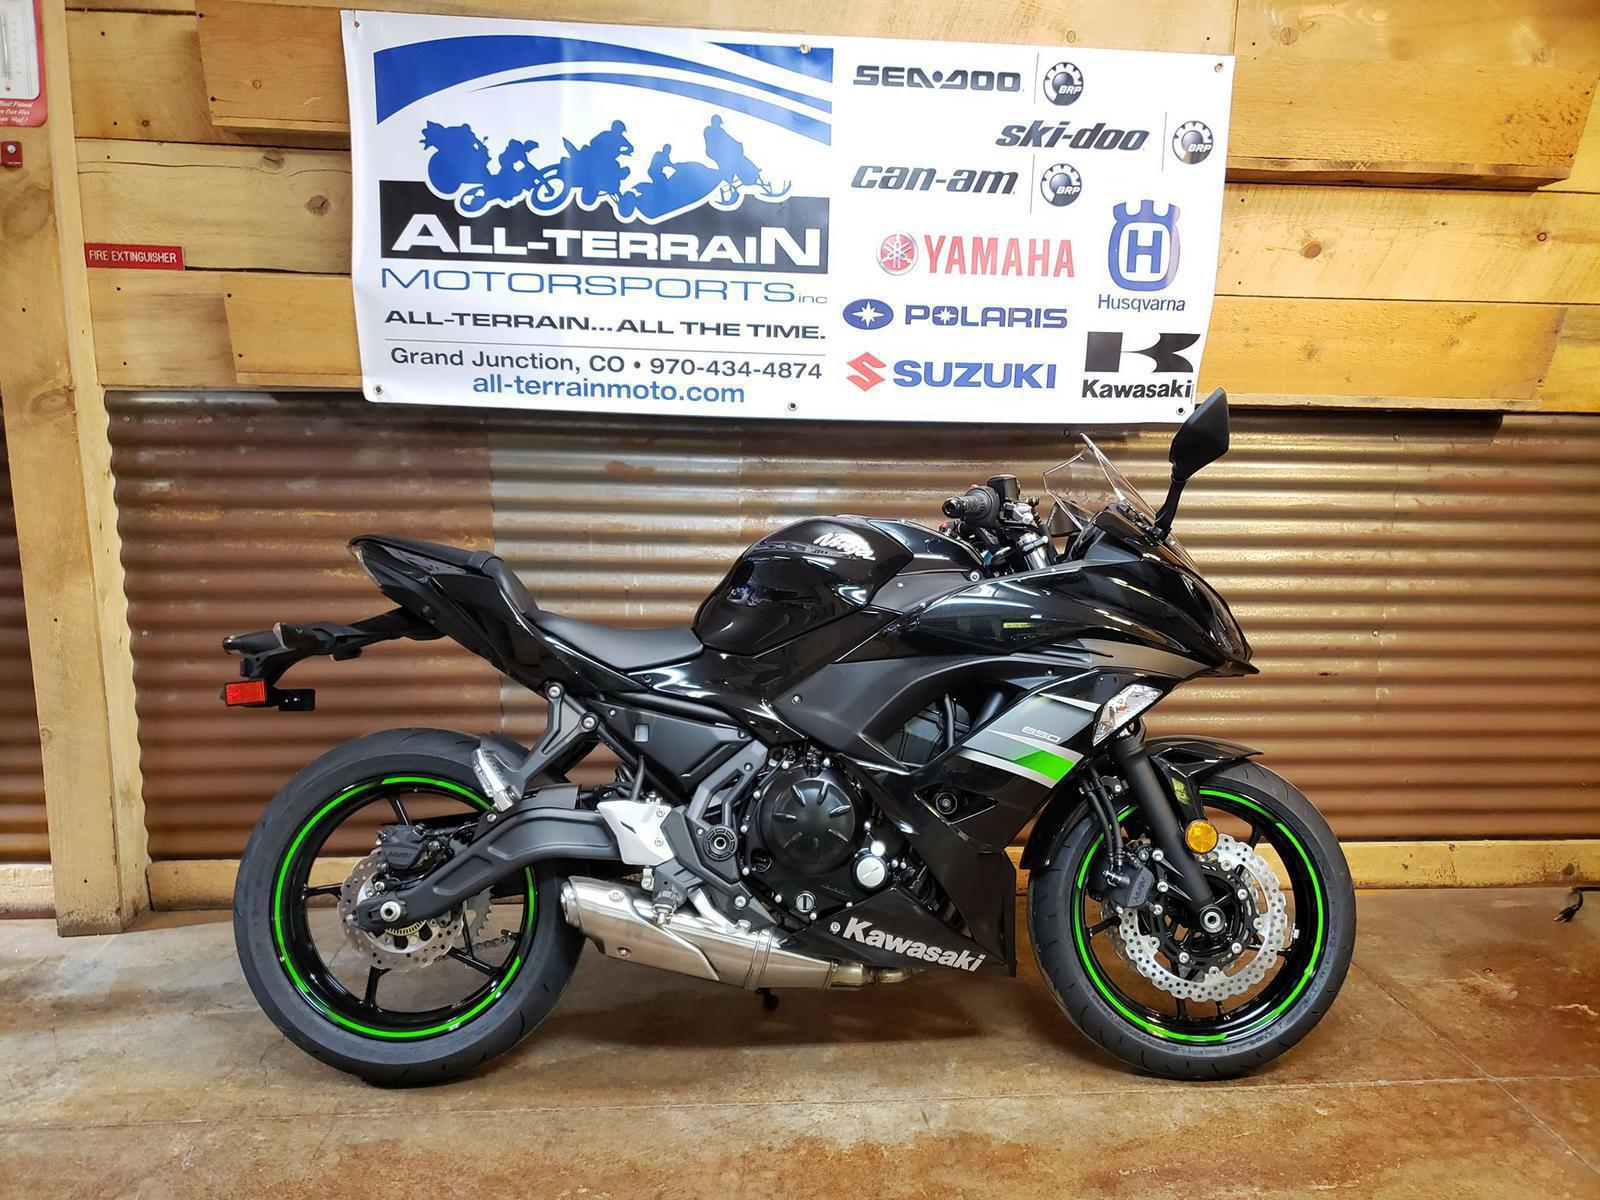 2019 Kawasaki Ninja 650 Abs For Sale In Grand Junction Co All